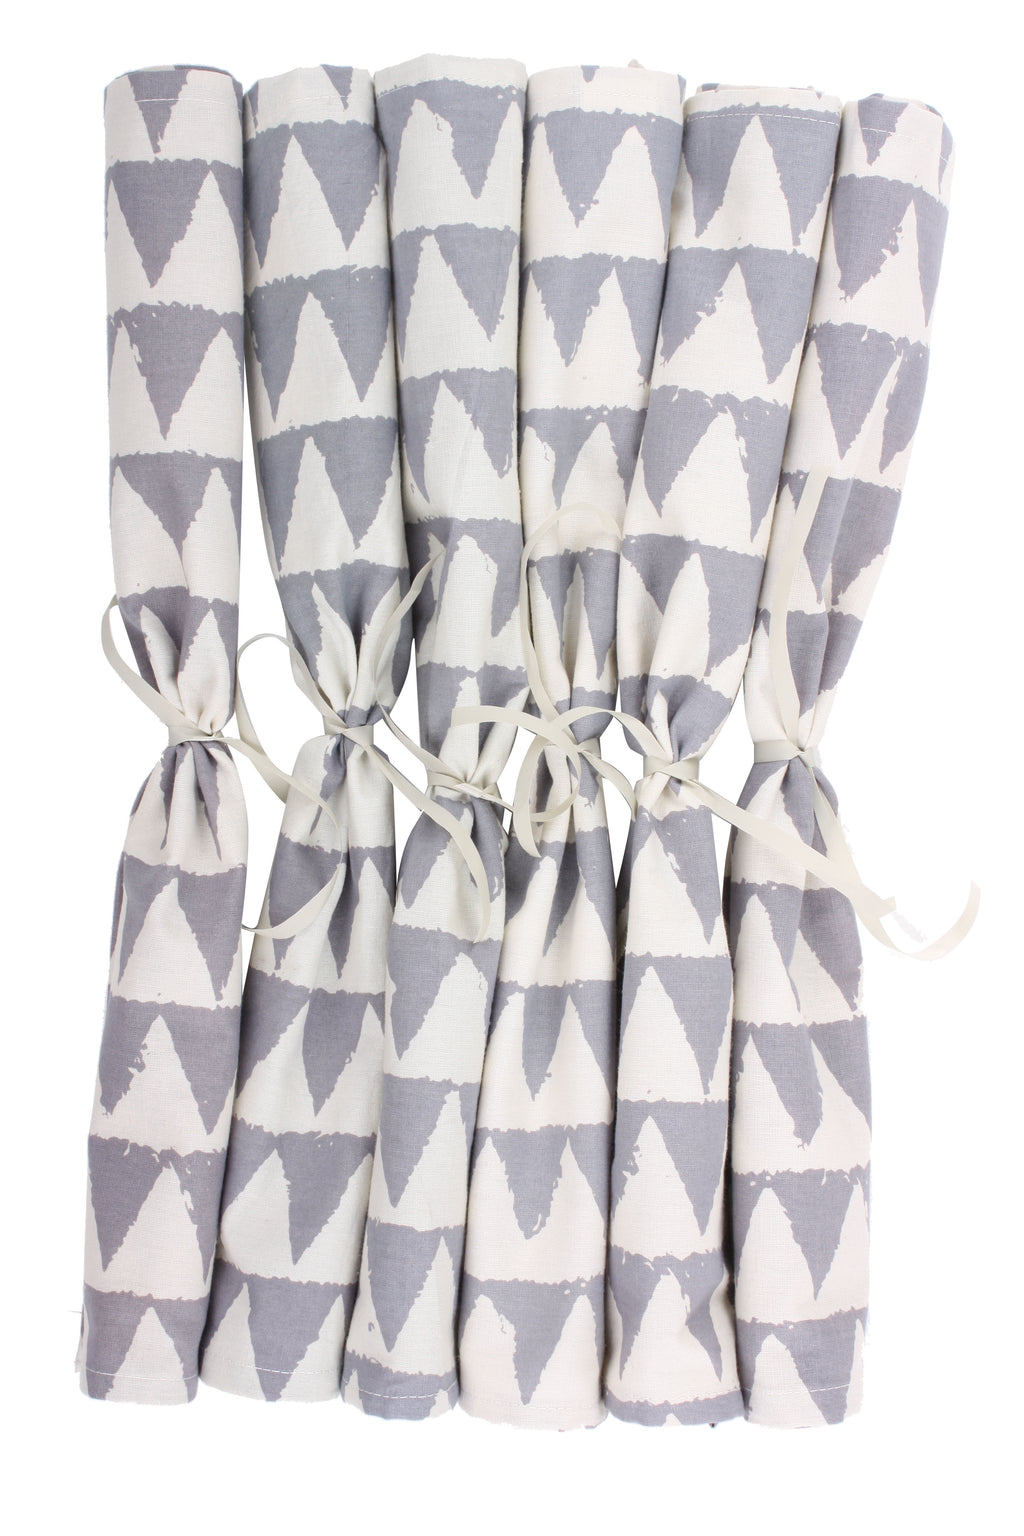 Grey Geo Napkins